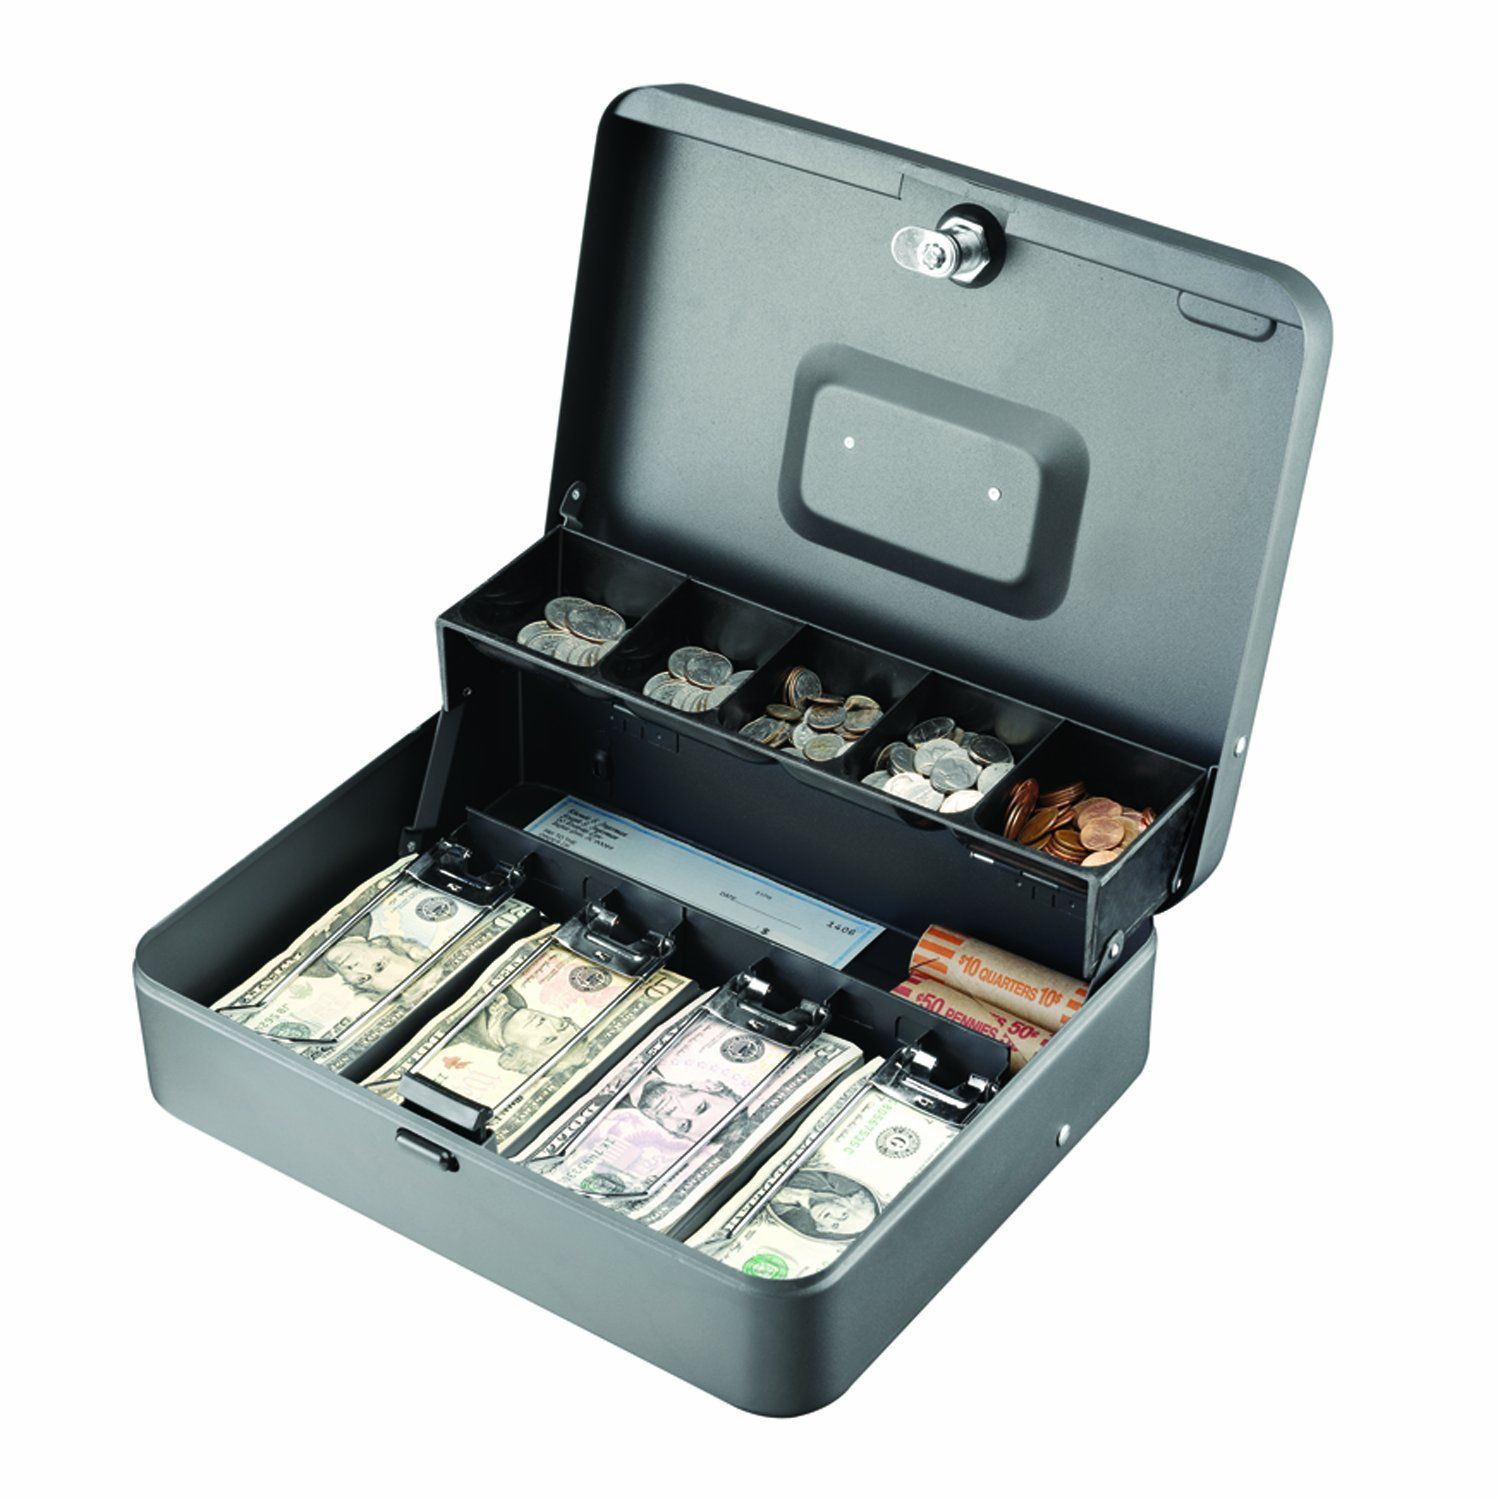 Cash Box. Five compartment cantilever tray opens automatically when cash box opens. Security slot for using a computer cable lock provided; keyed lock comes with 2 keys.  http://www.farmersmarketonline.com/marketsupply.htm